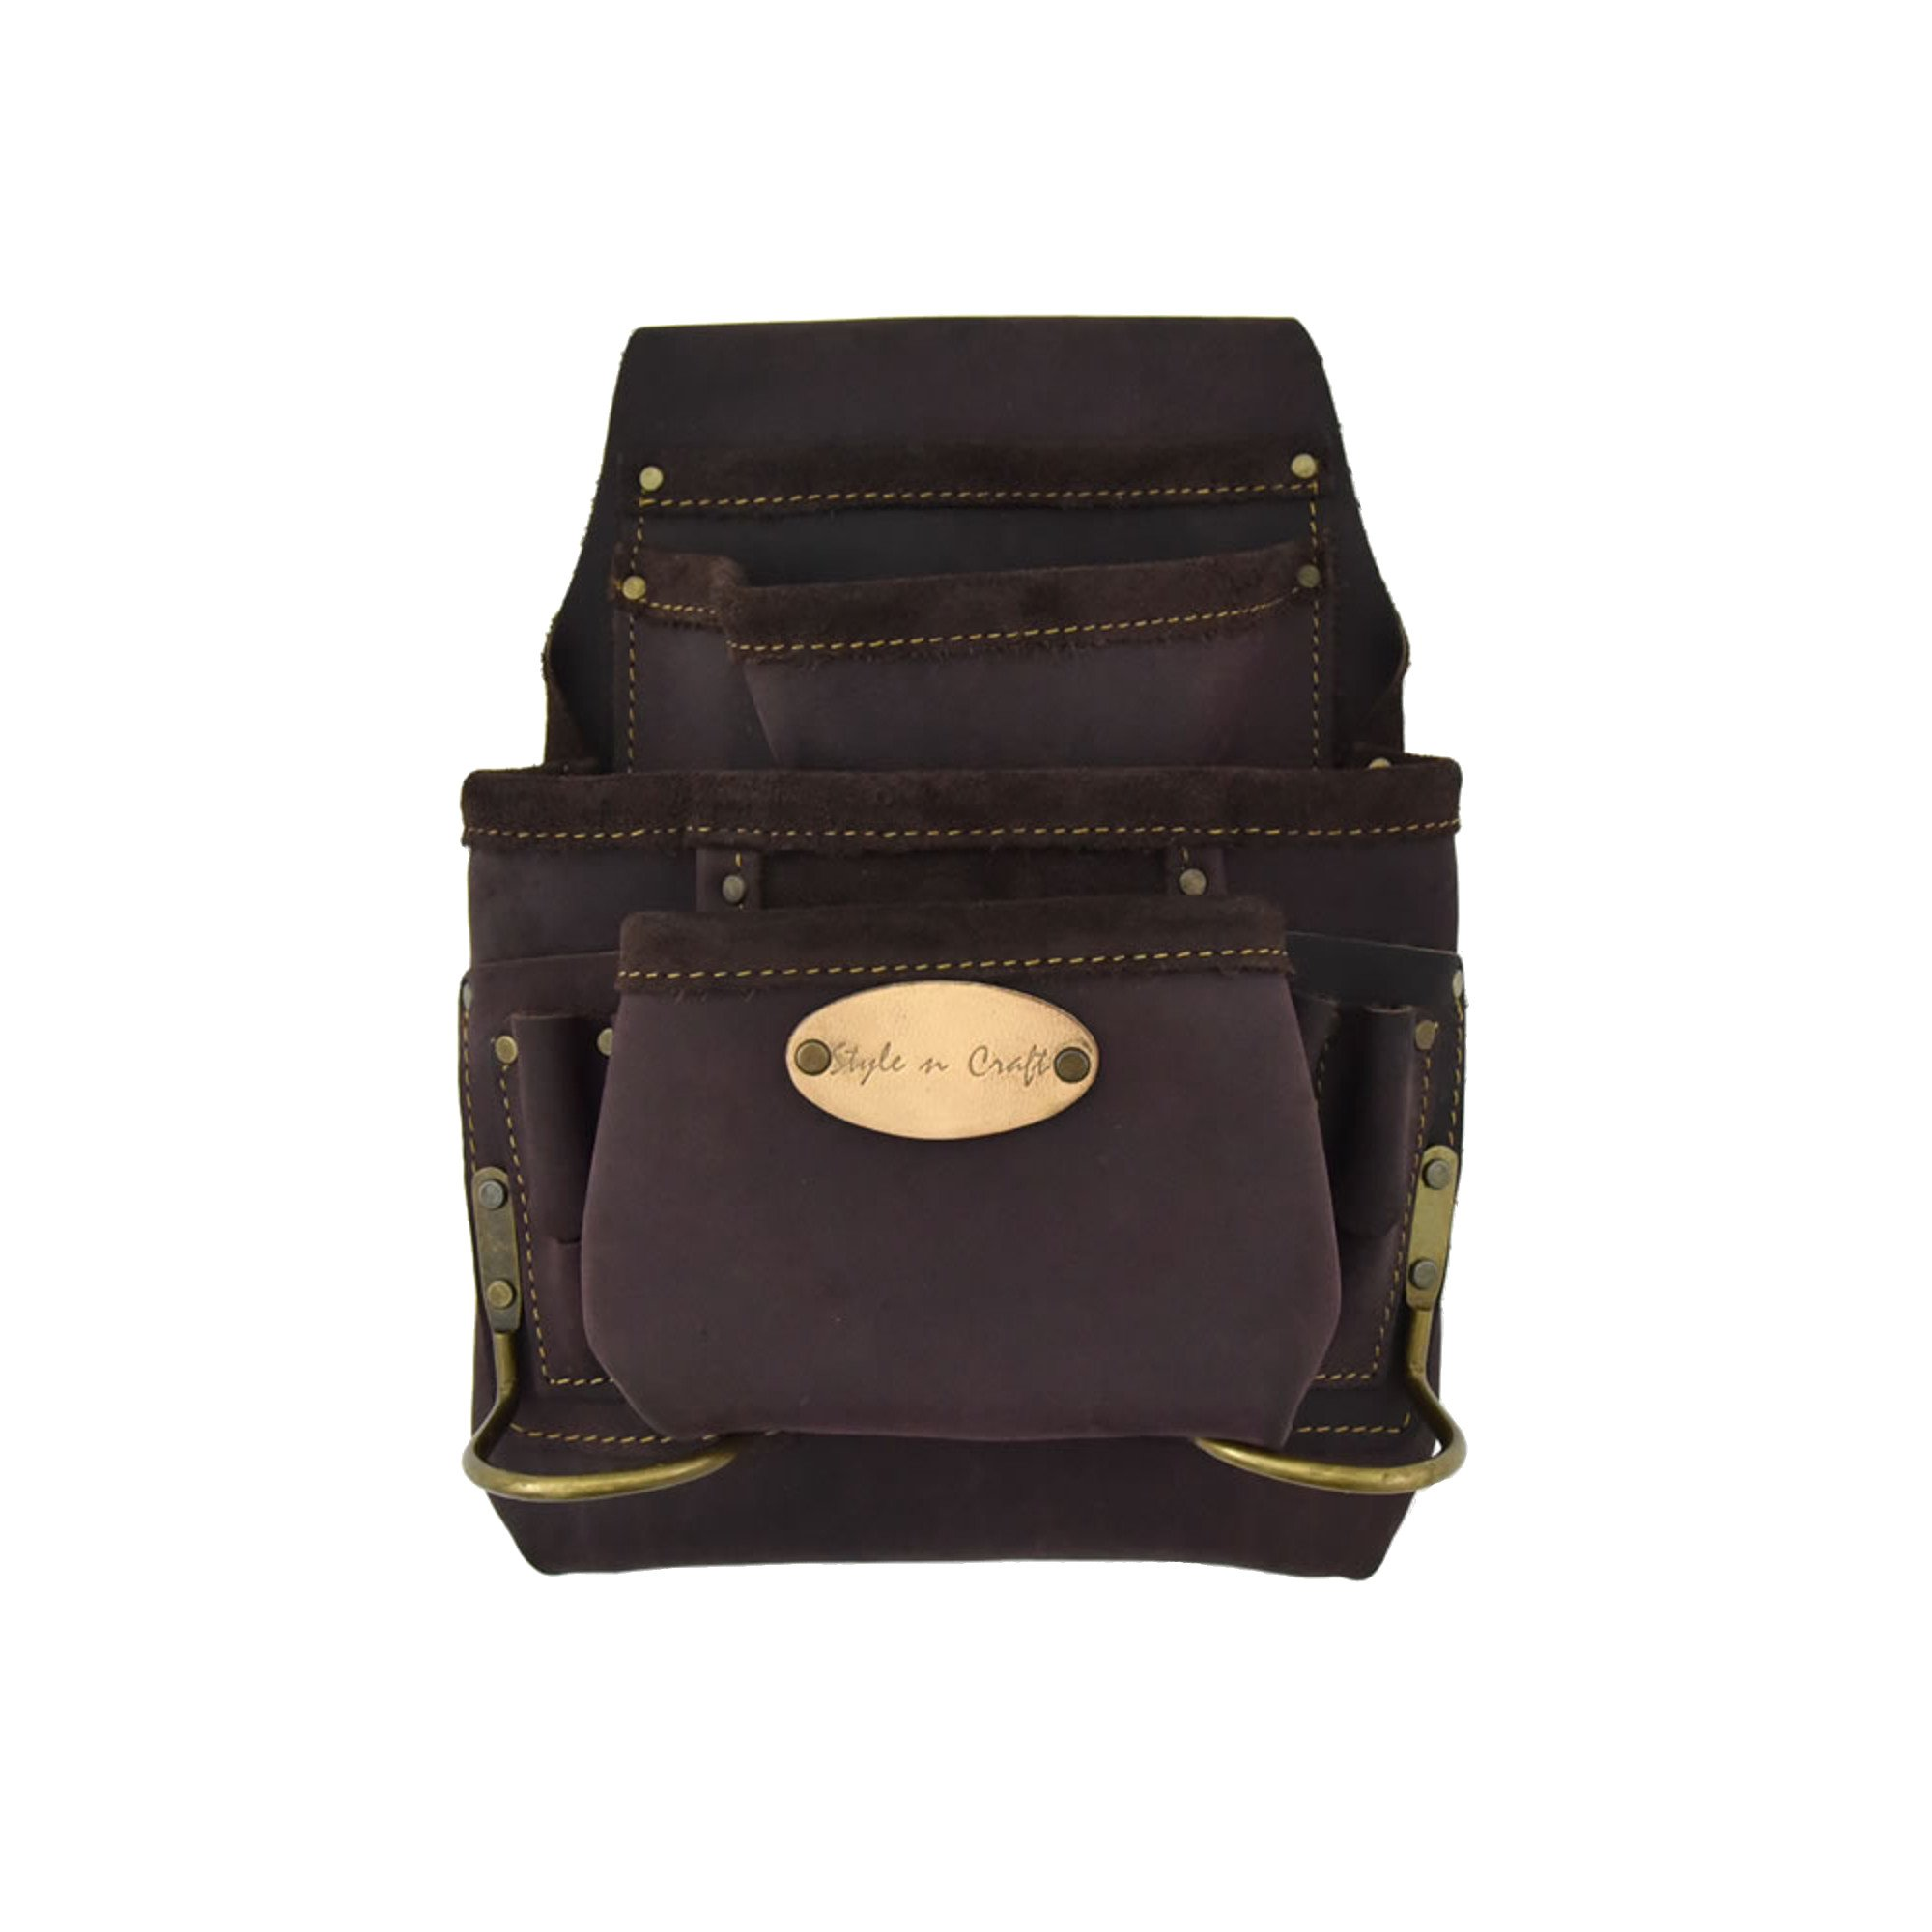 Style n Craft 90-923 10 Pocket Nail and Tool Pouch With 2 Hammer Holders in Oiled Top Grain Leather